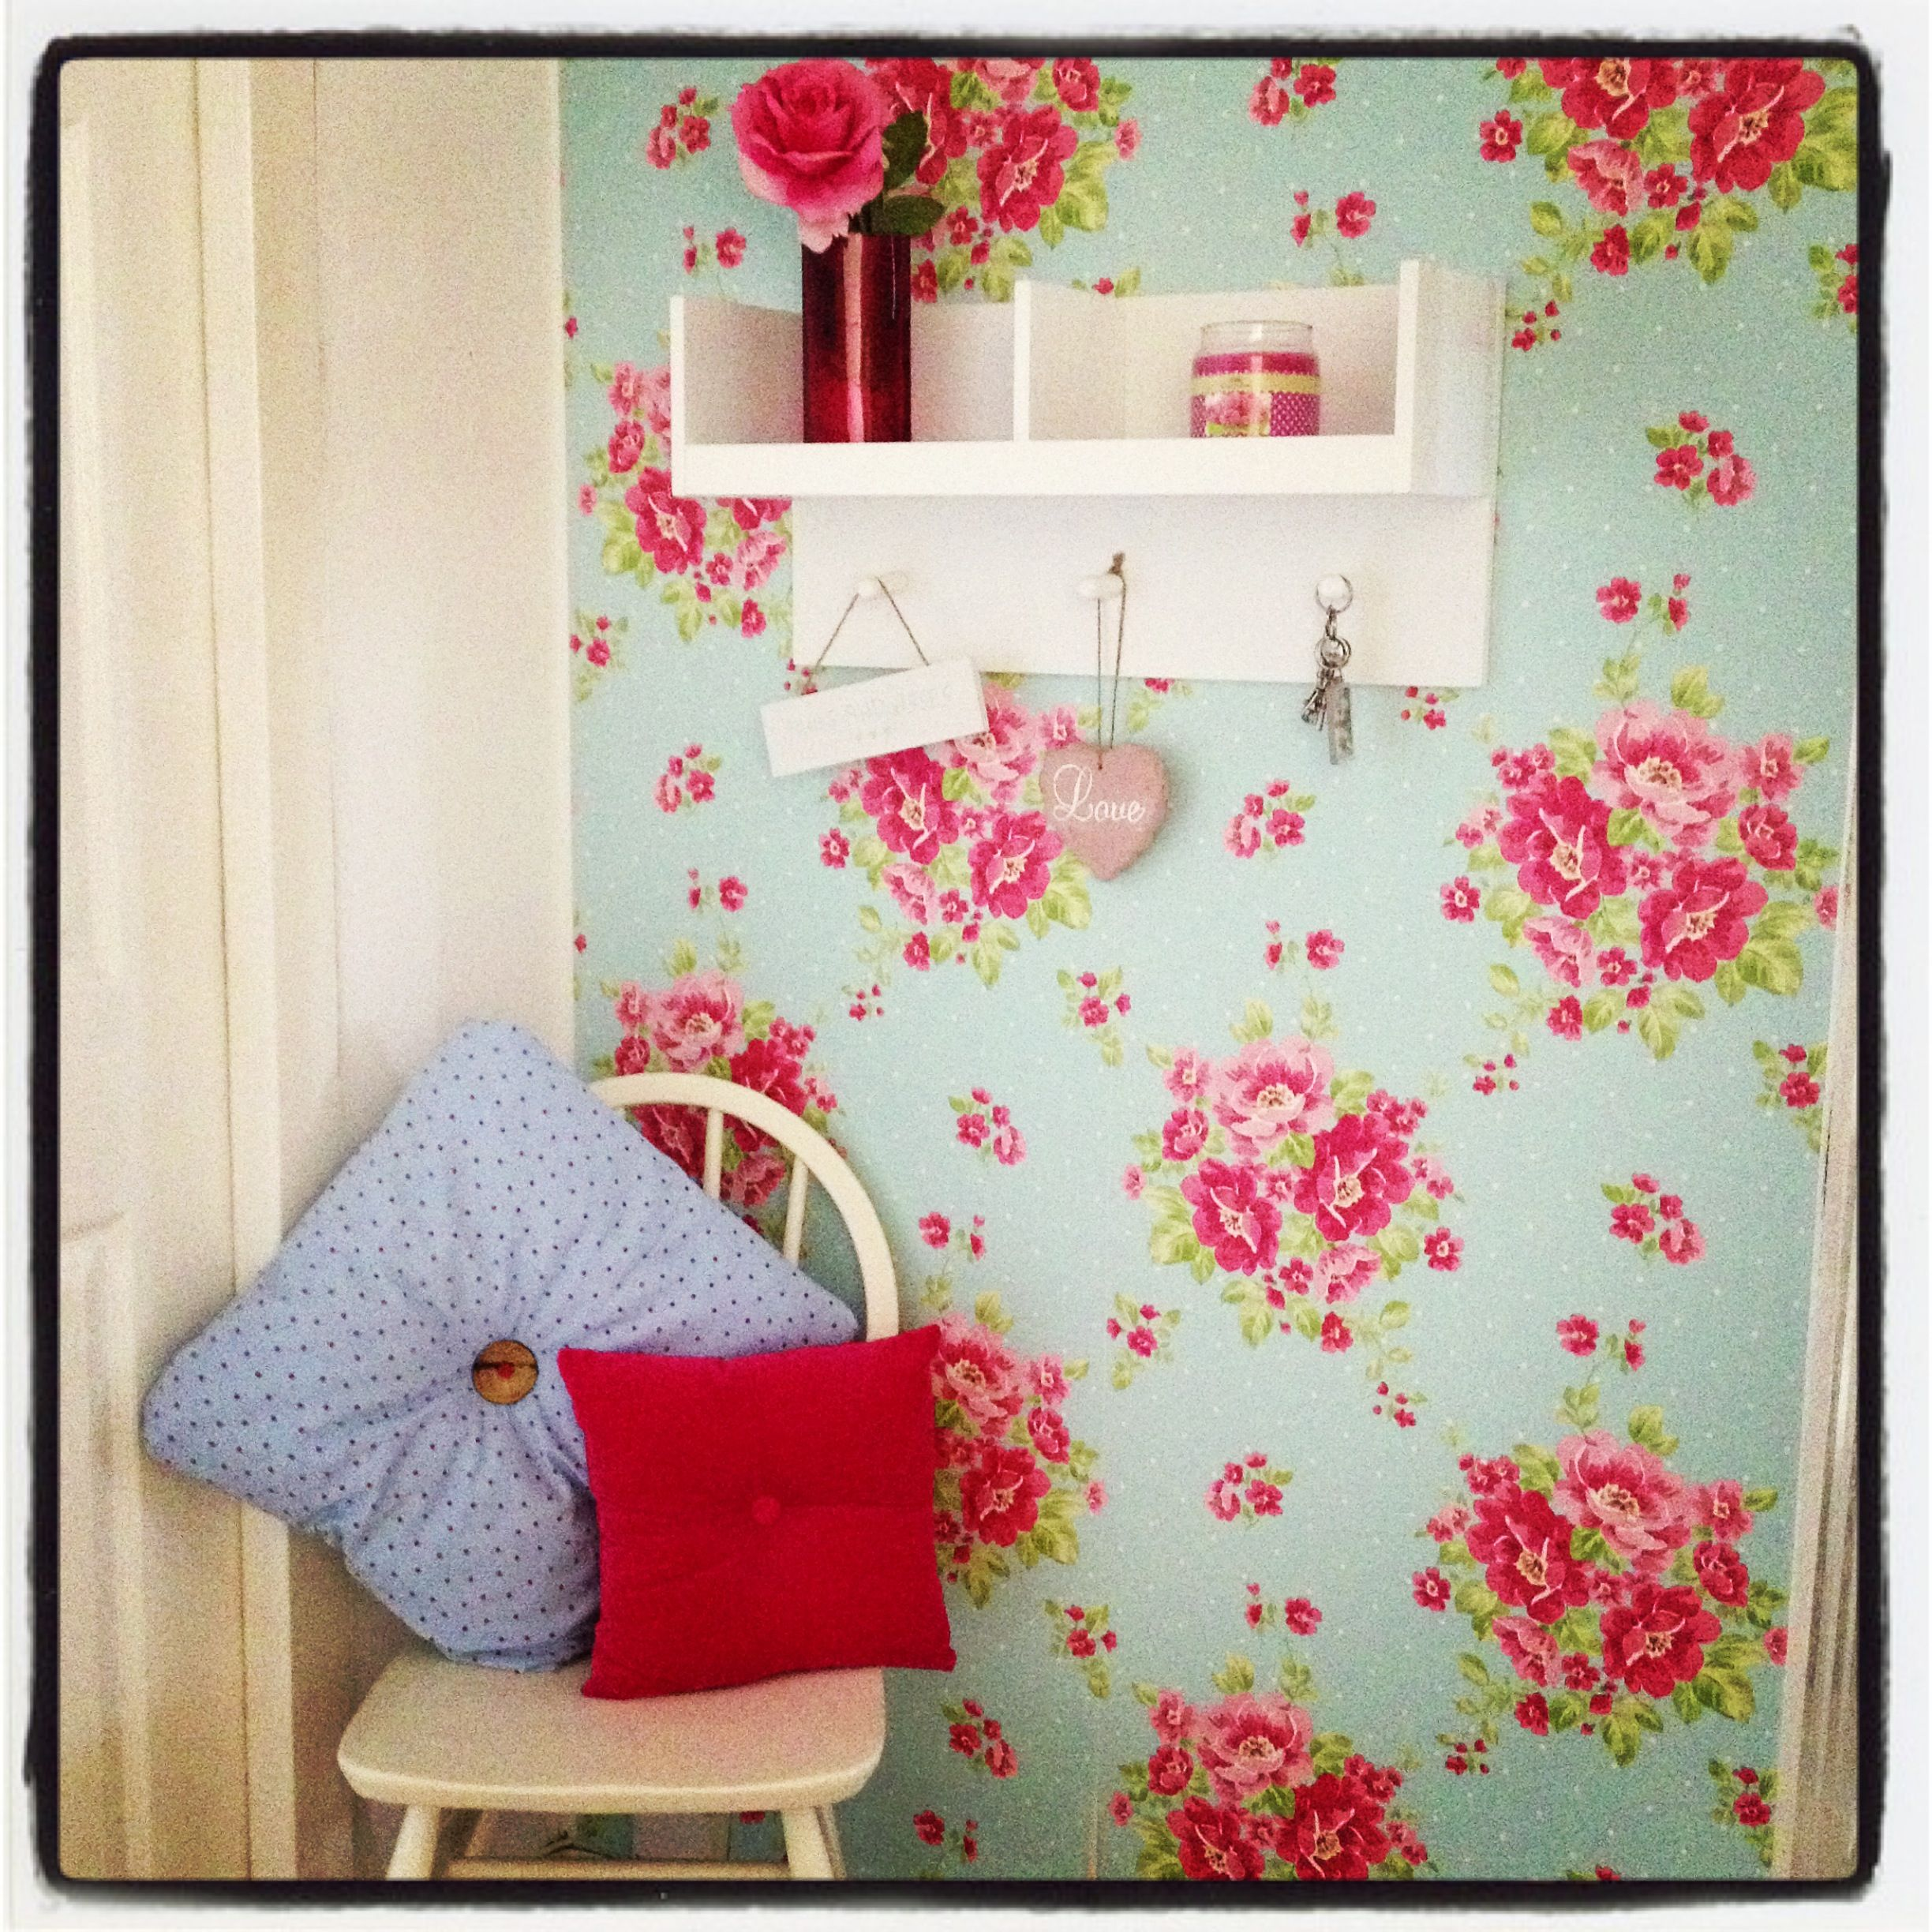 New hallway vintage shabby chic floral :-)